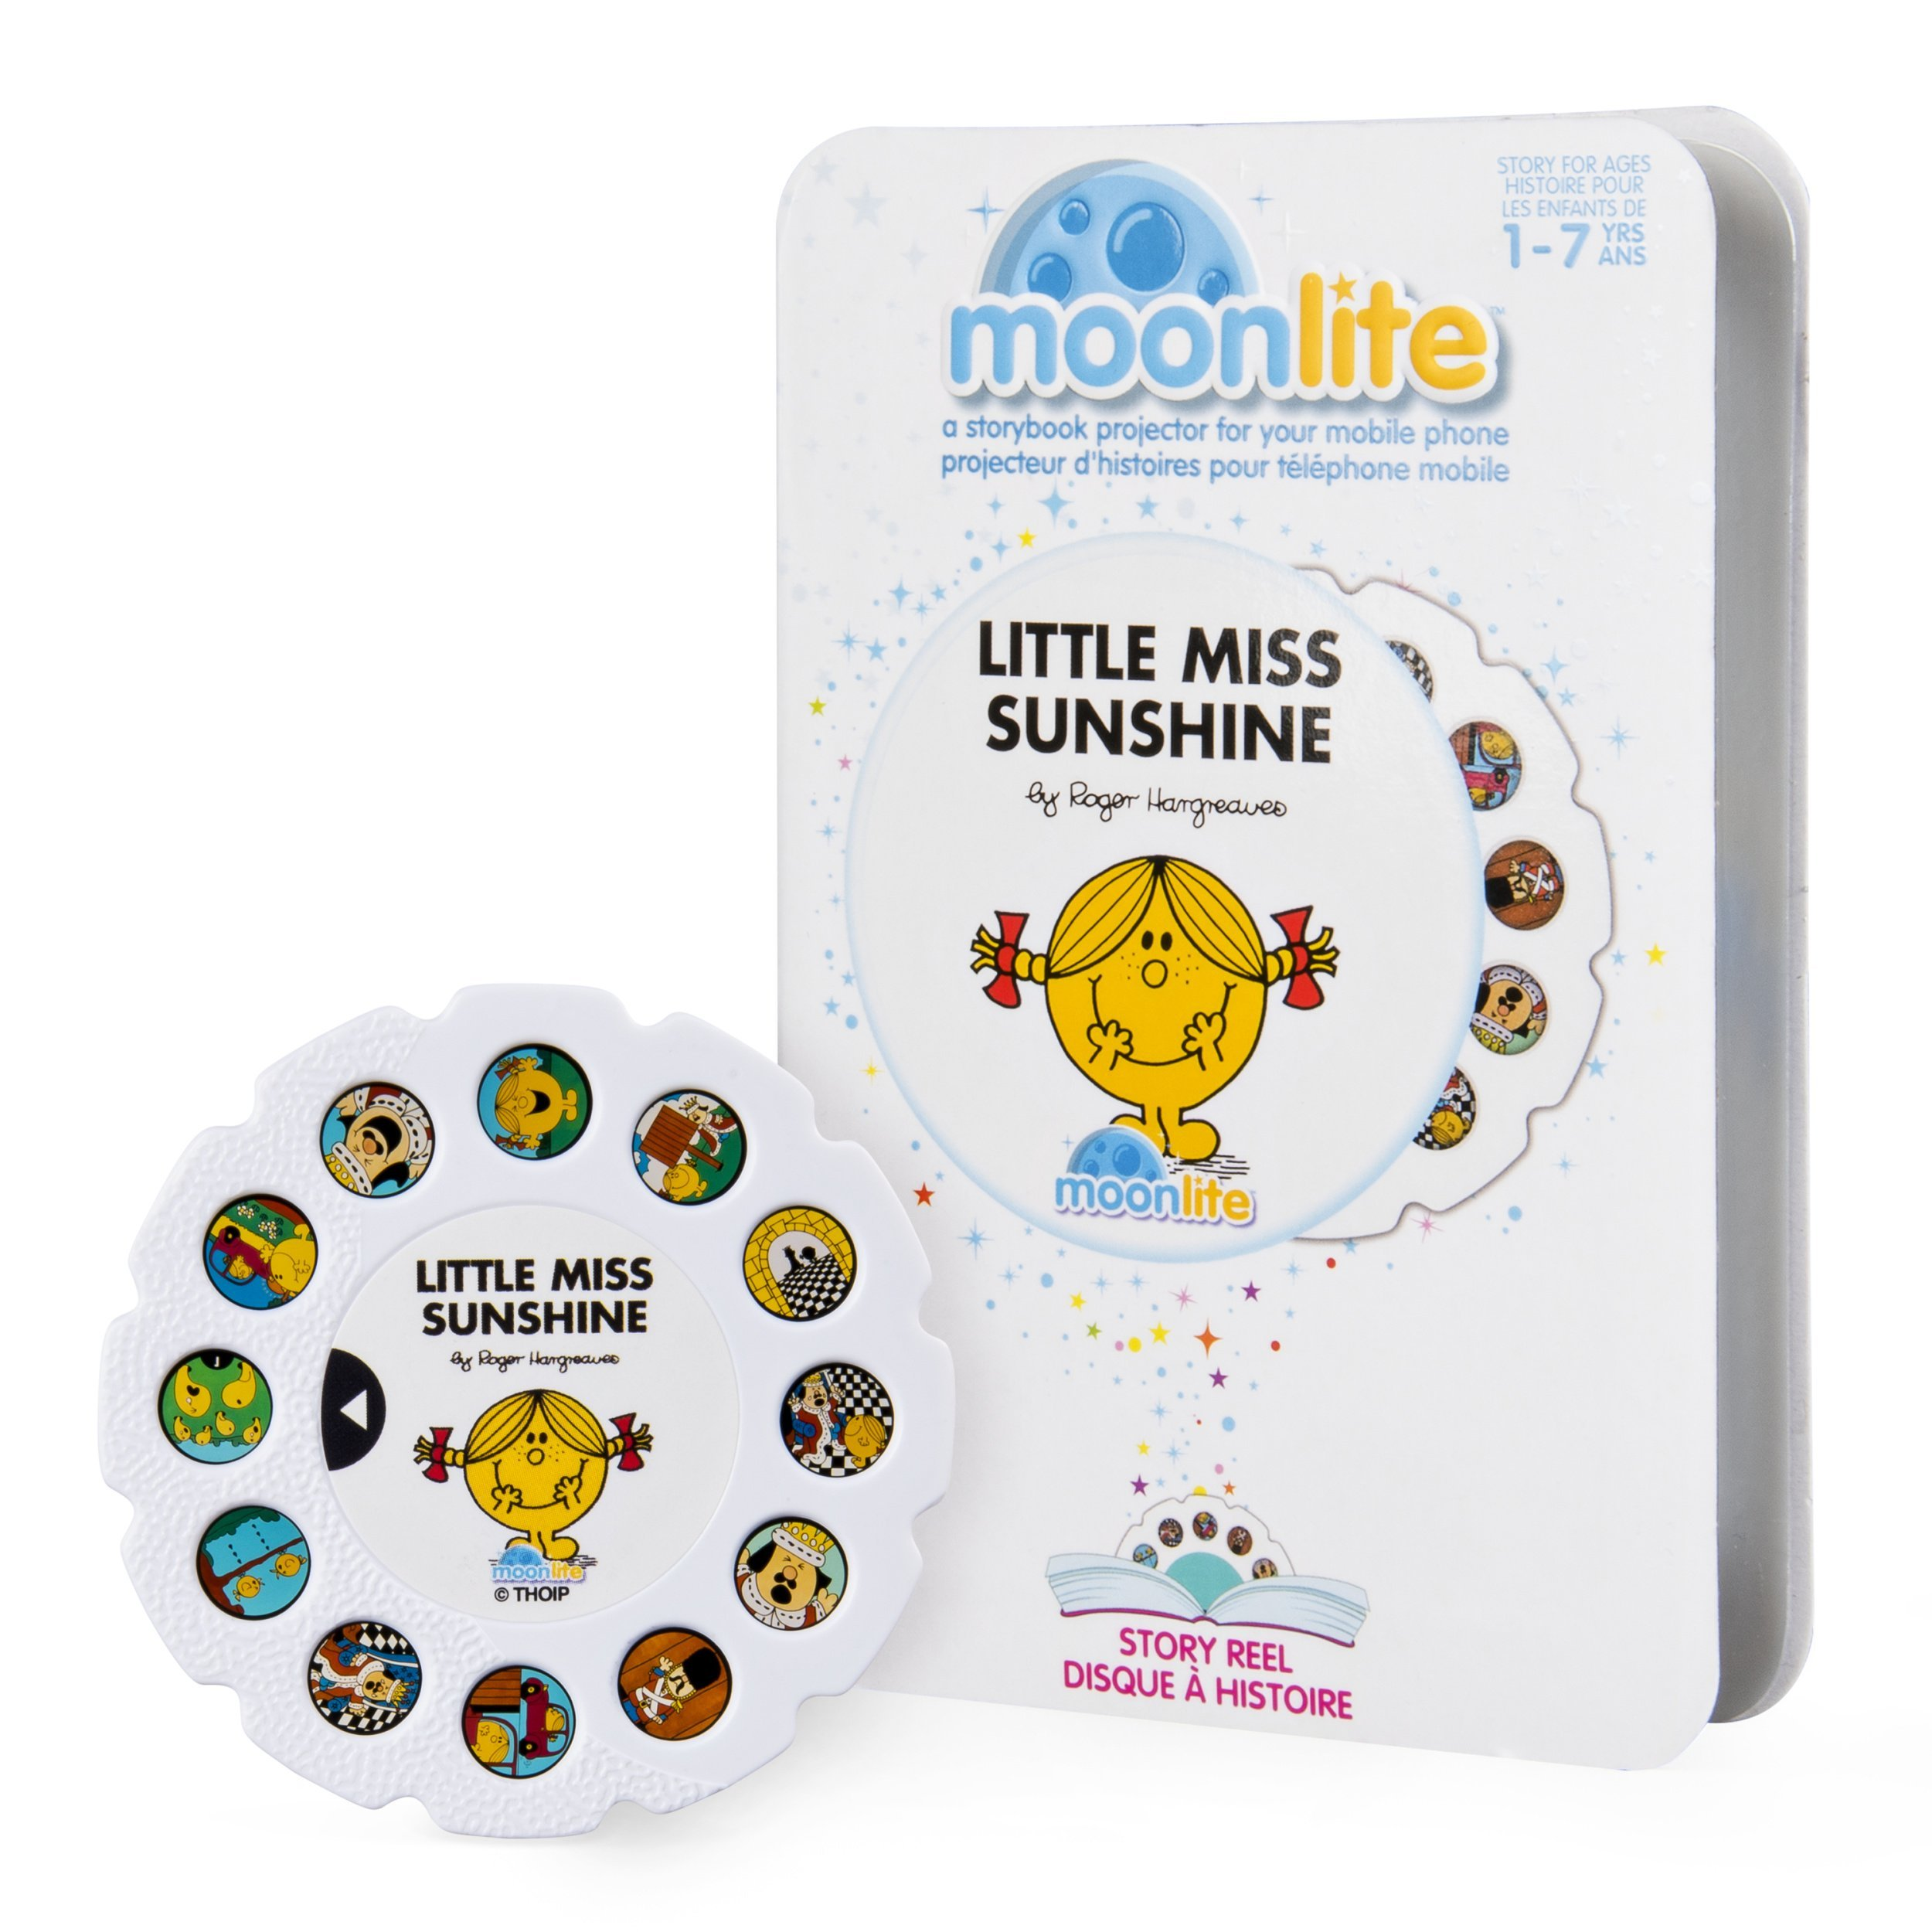 Moonlite - Little Miss Sunshine Story Reel for Moonlite Storybook Projector, for Ages 1 and Up